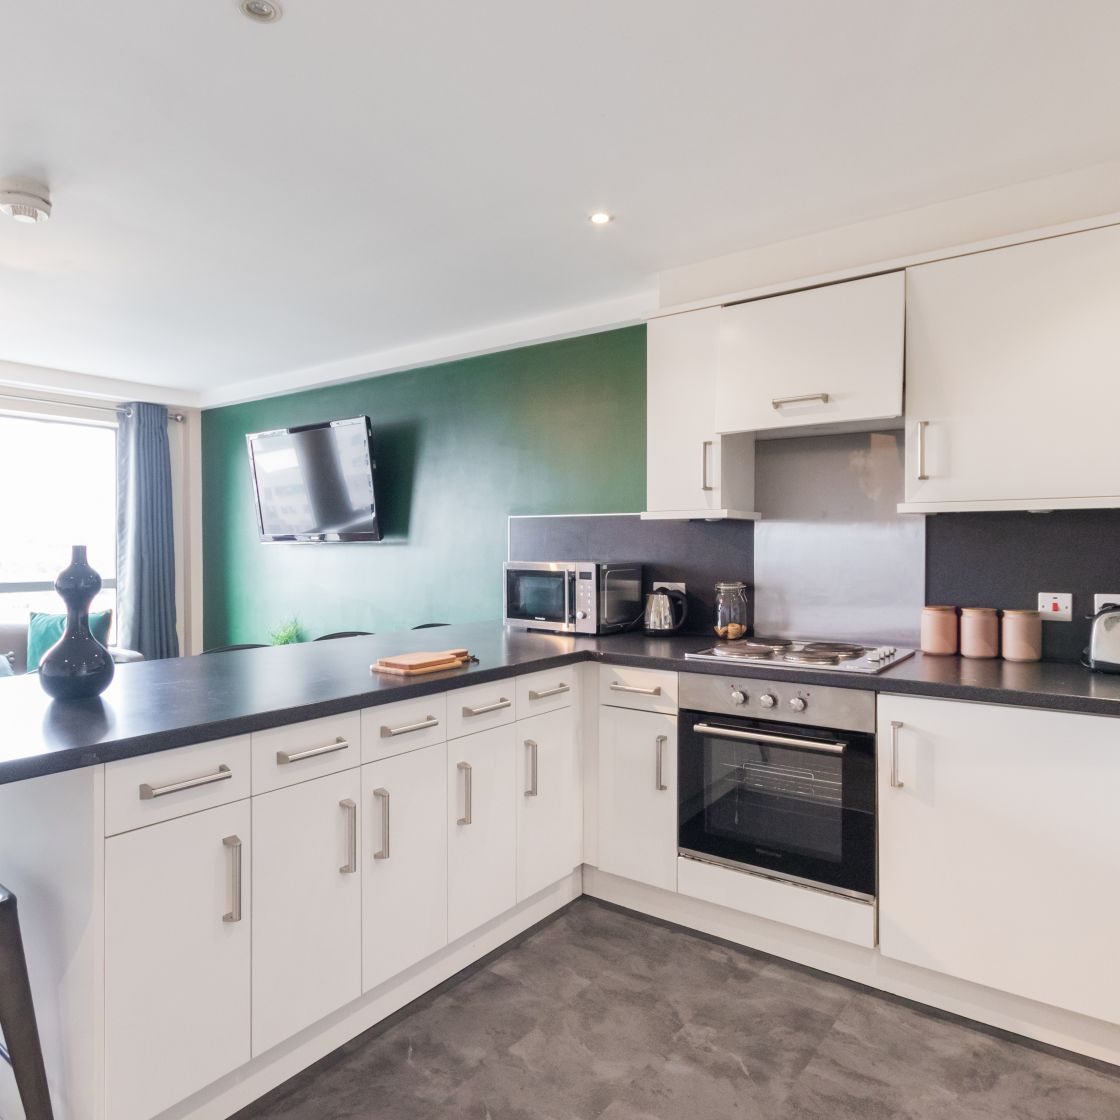 Large shared kitchen lounge with oven, microwave and TV. IconInc, Triangle. Student Accommodation in Leeds